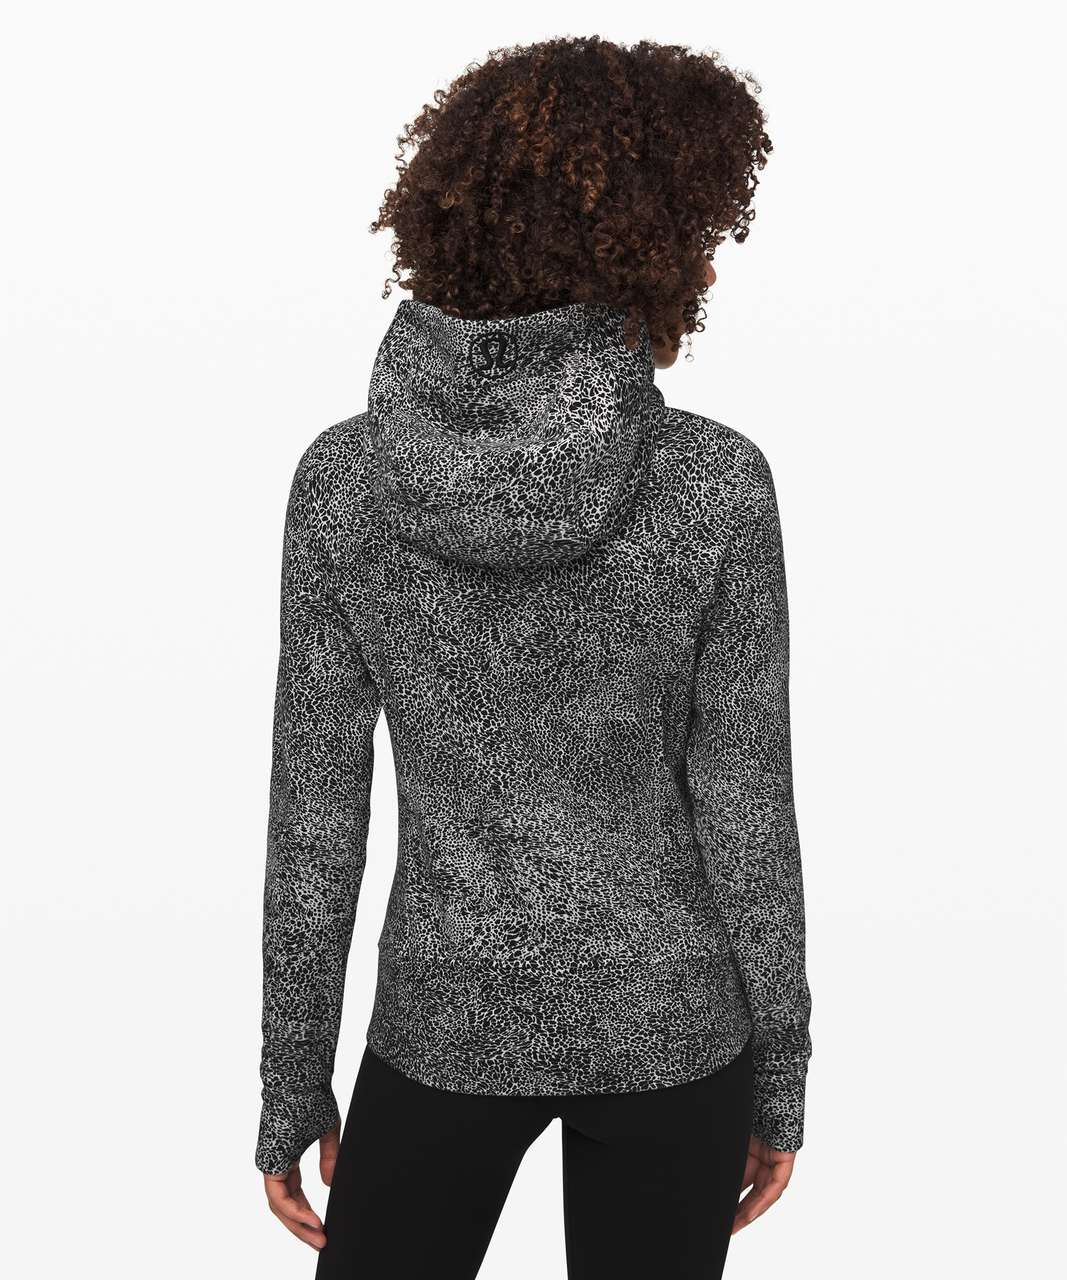 Lululemon Scuba Hoodie *Light Cotton Fleece - Polar Shift Inverse Alpine White Black